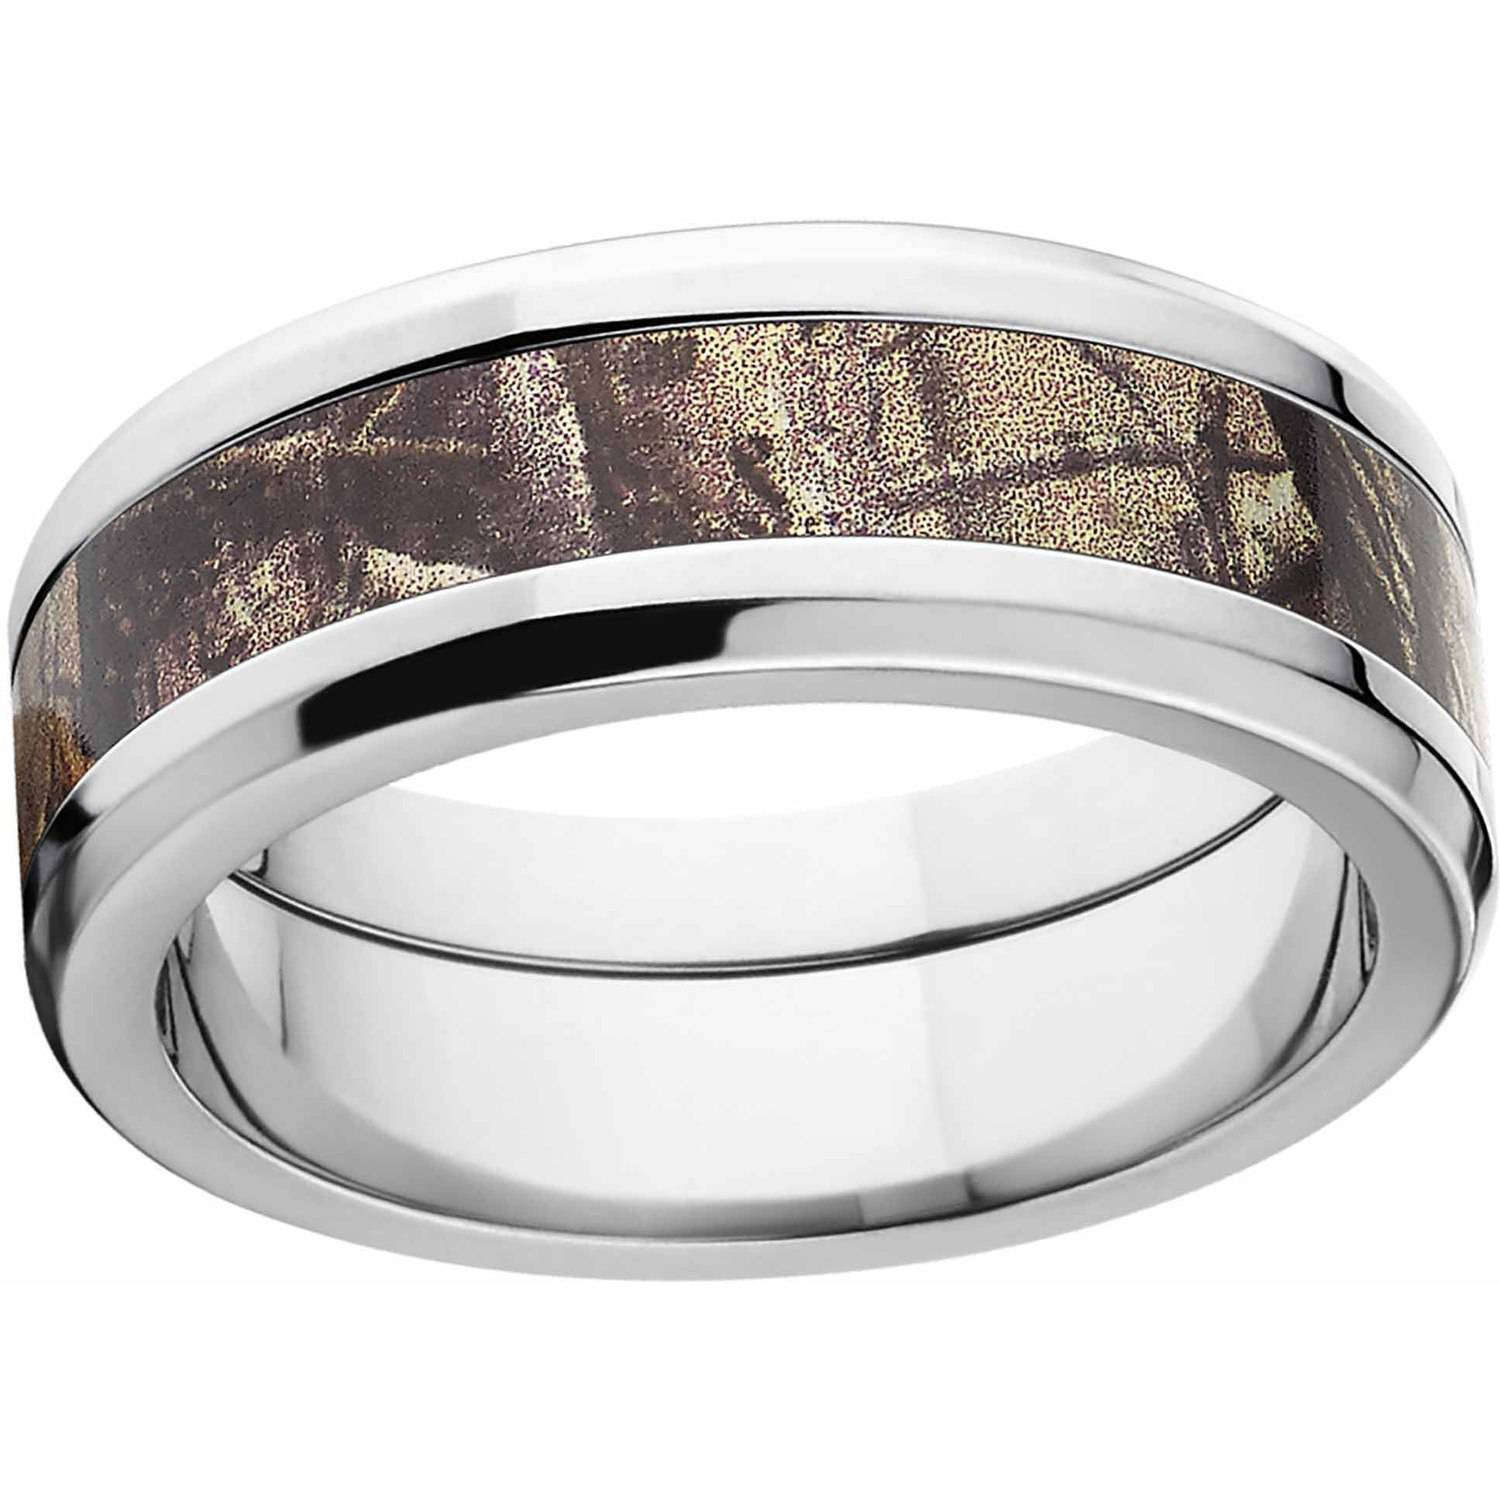 Realtree AP Men's Camo 8mm Stainless Steel Wedding Band with Polished Edges and Deluxe Comfort Fit